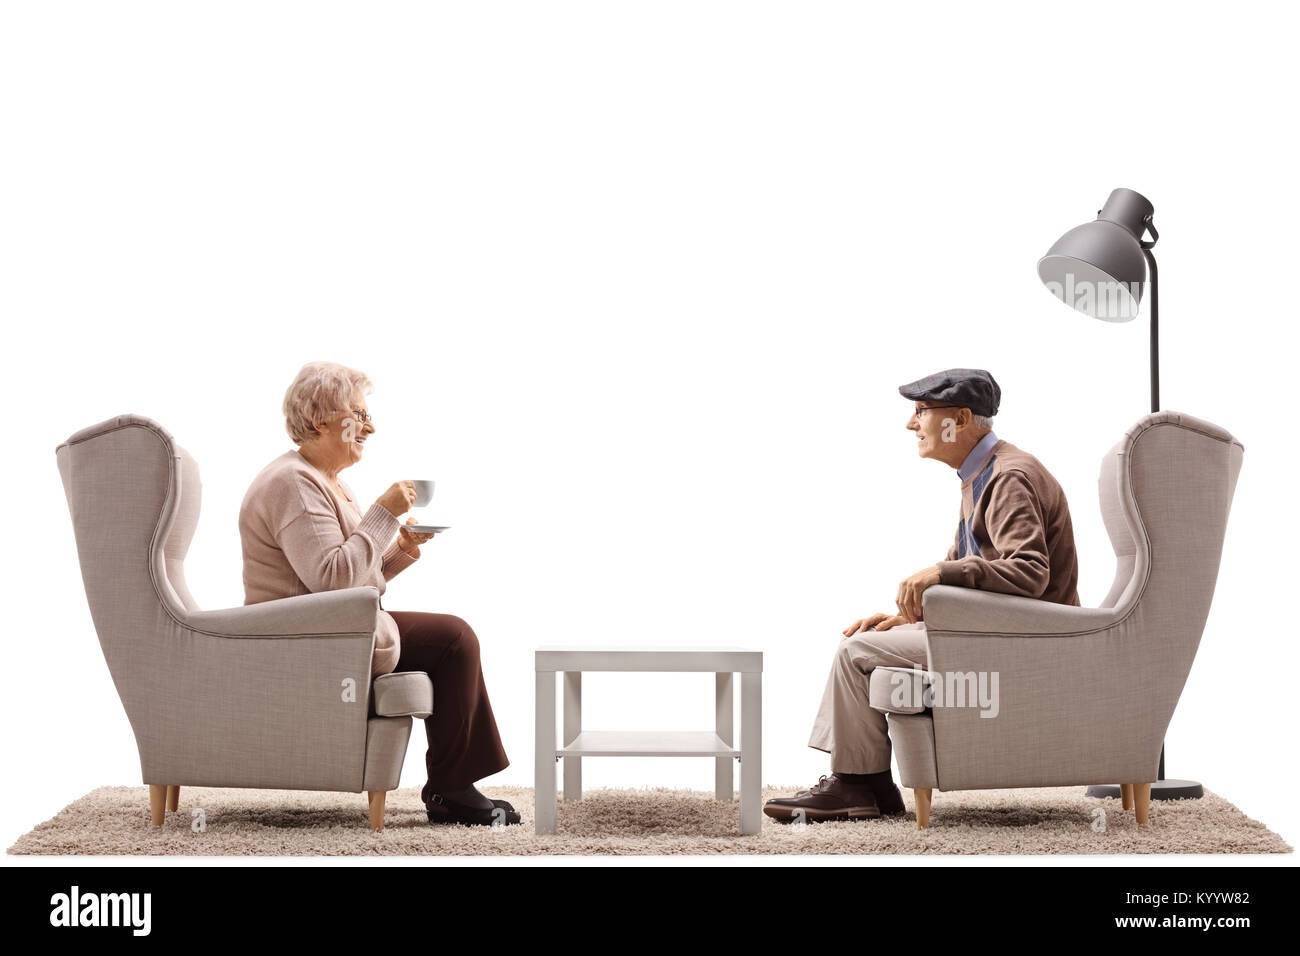 Elderly Woman With A Cup And An Elderly Man Sitting In Armchairs And